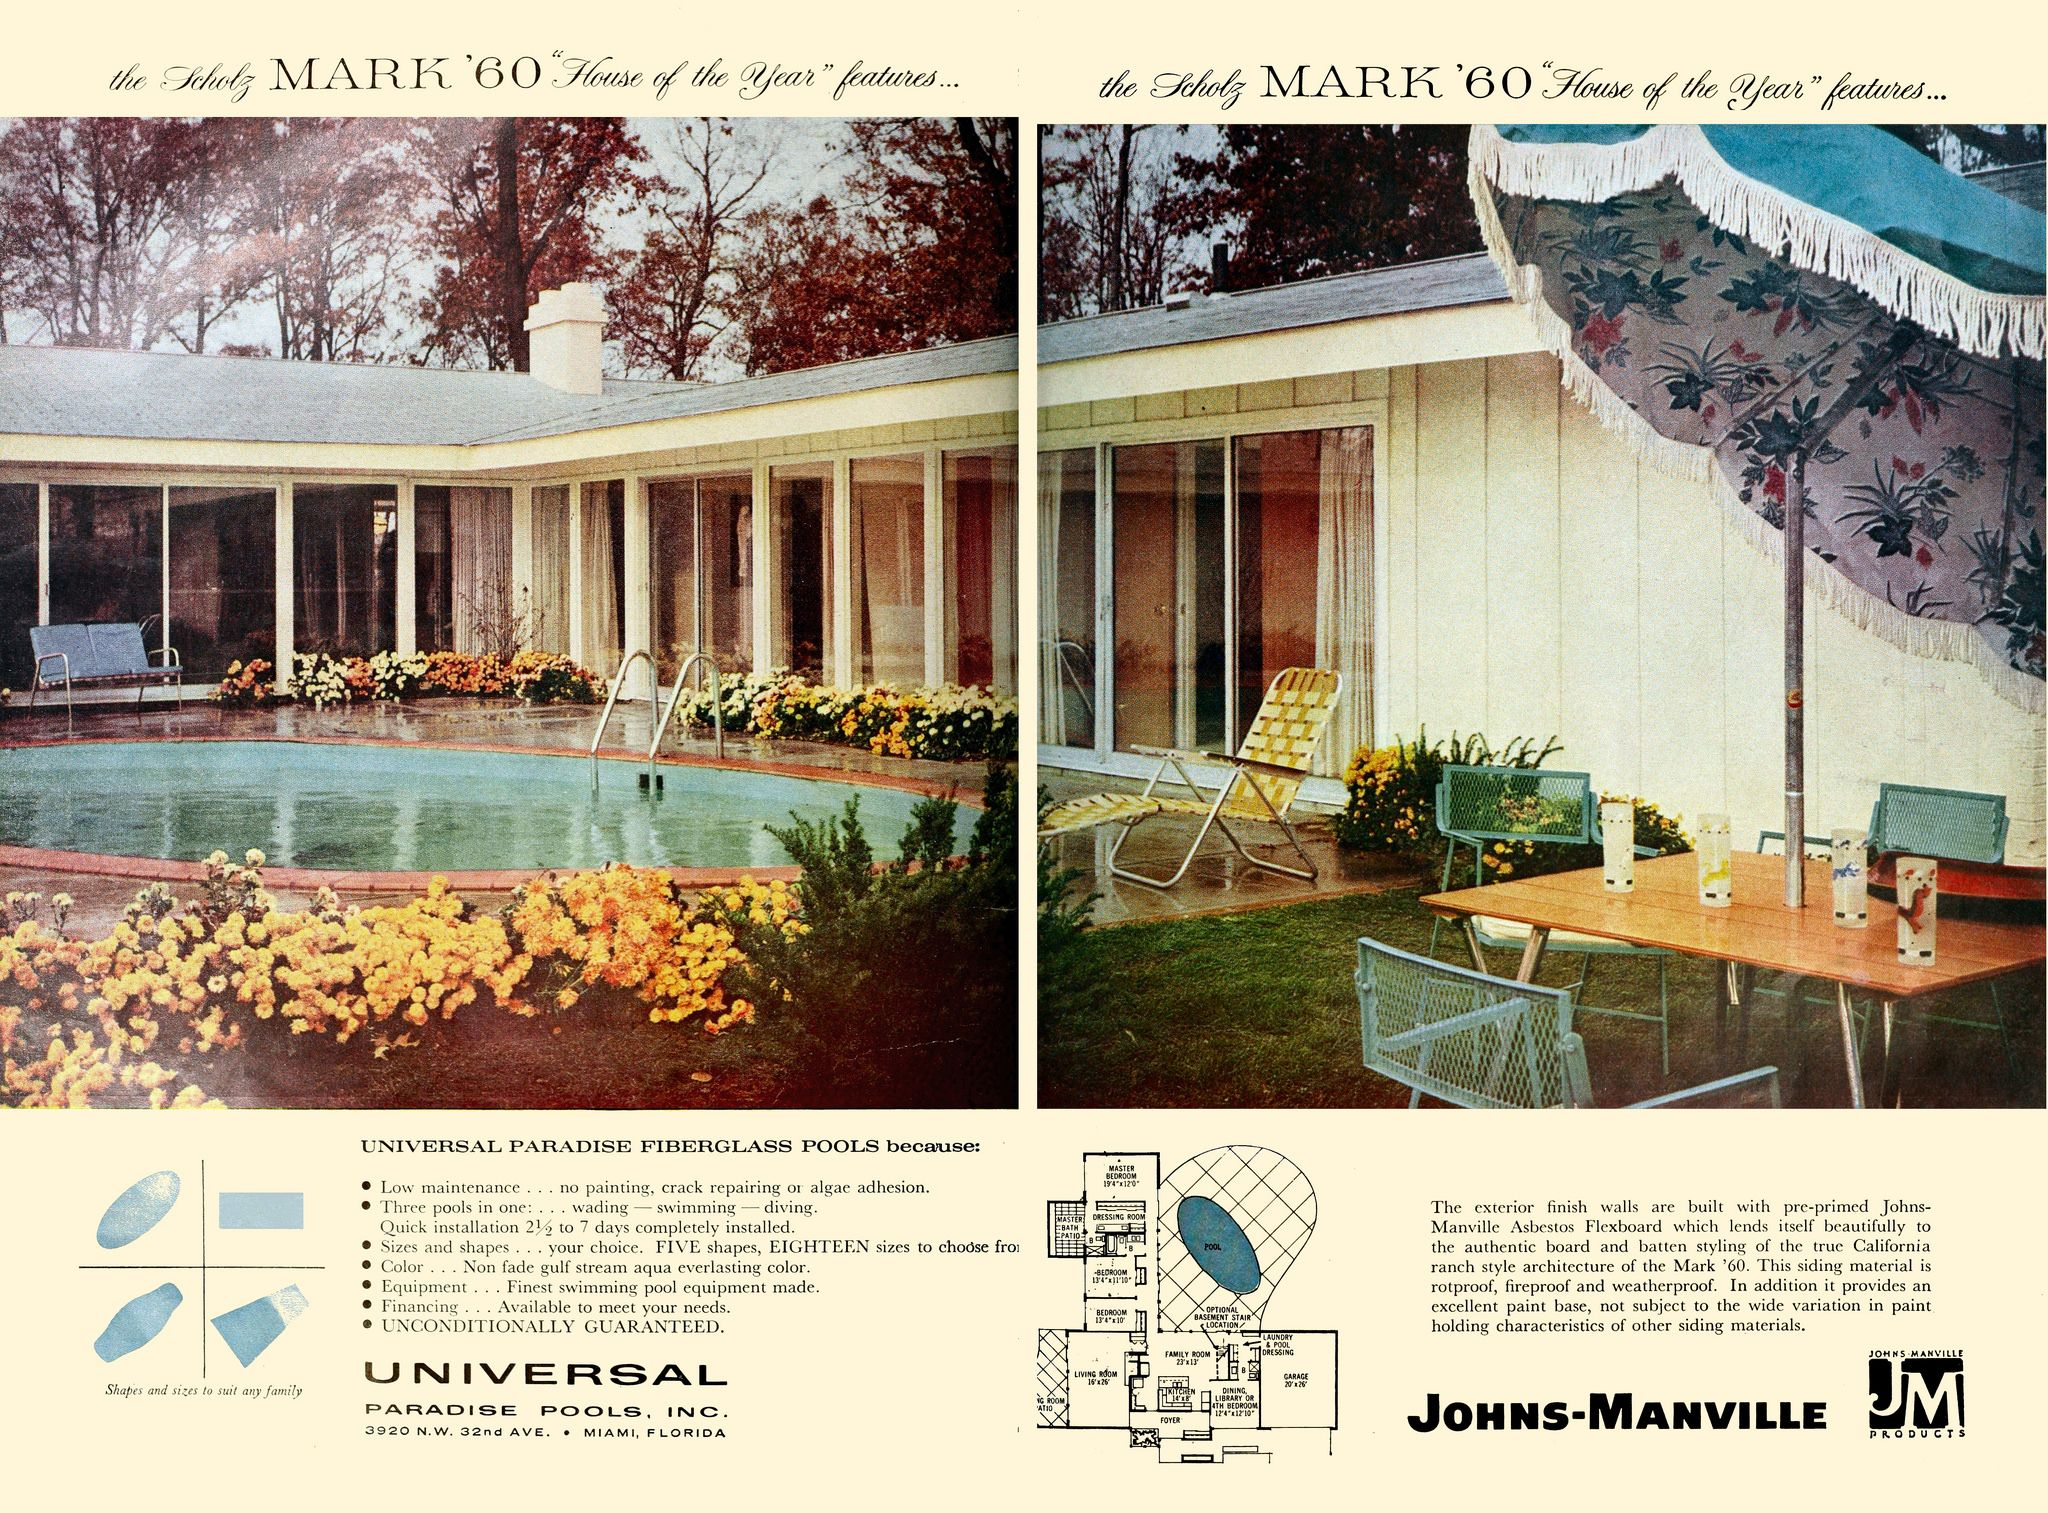 Scholz Mark \'60 House of the Year - House & Garden 1960 (6 of 6)